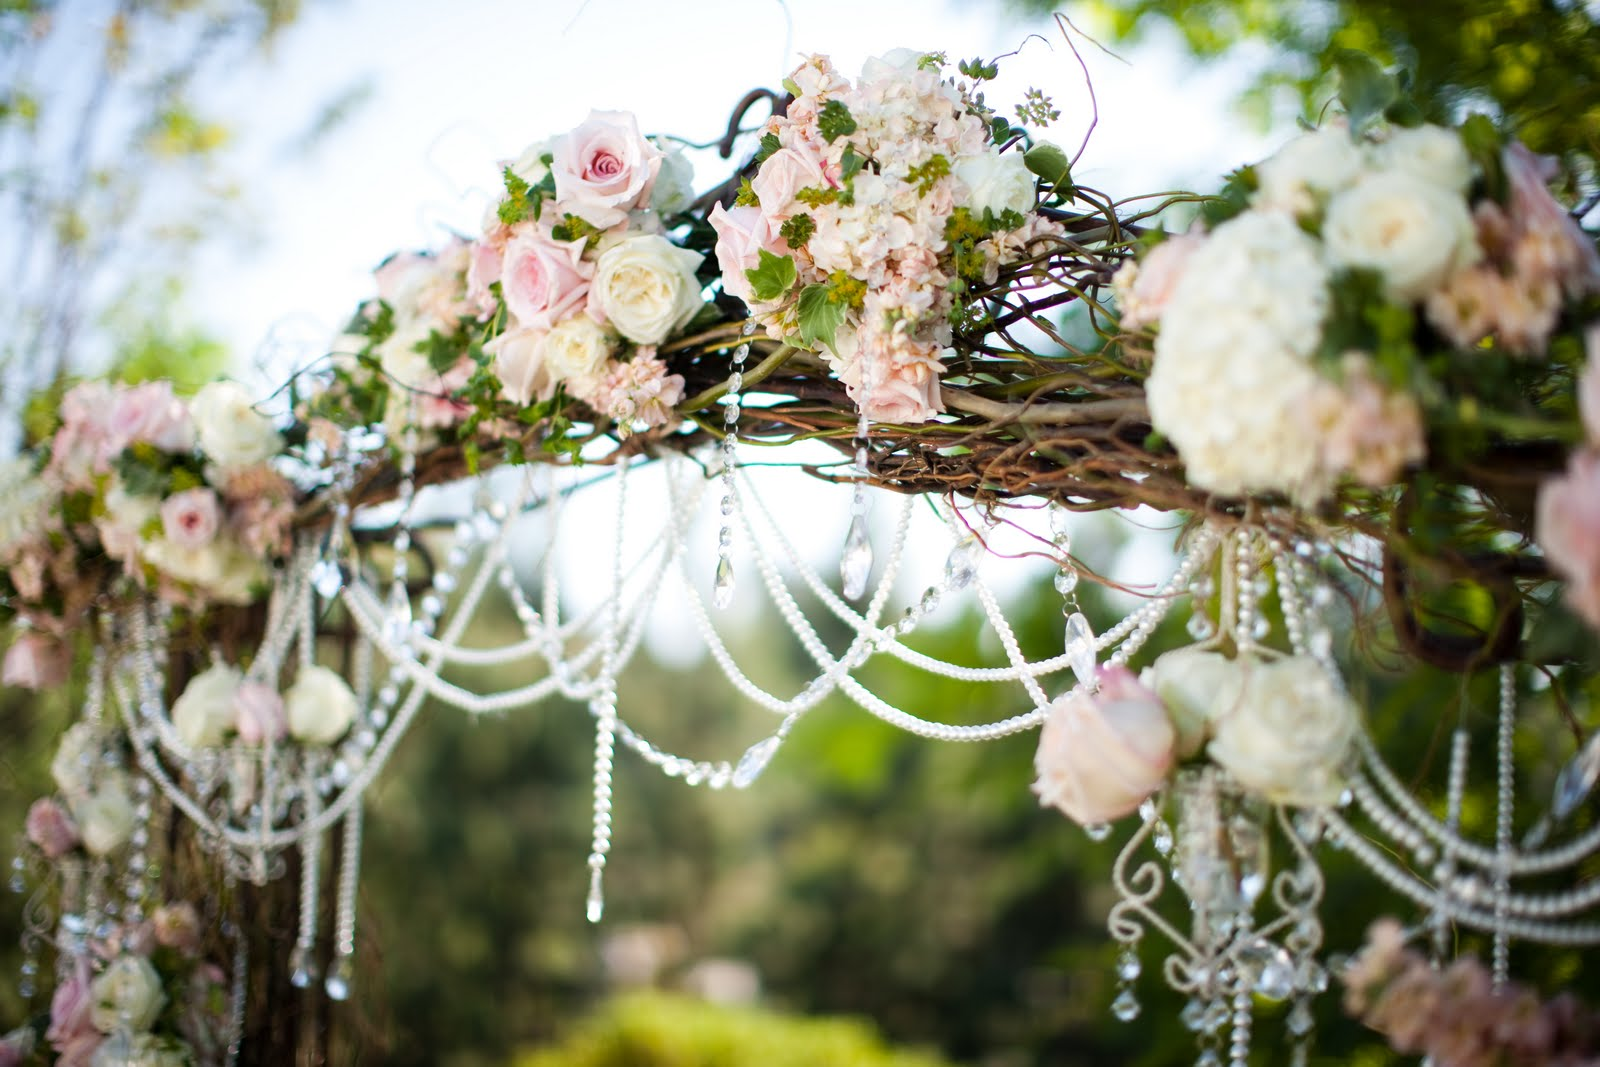 Wedding Ceremony Ideas Flower Covered Wedding Arch: Easy Building Shed And Garage: Arbor In Wedding